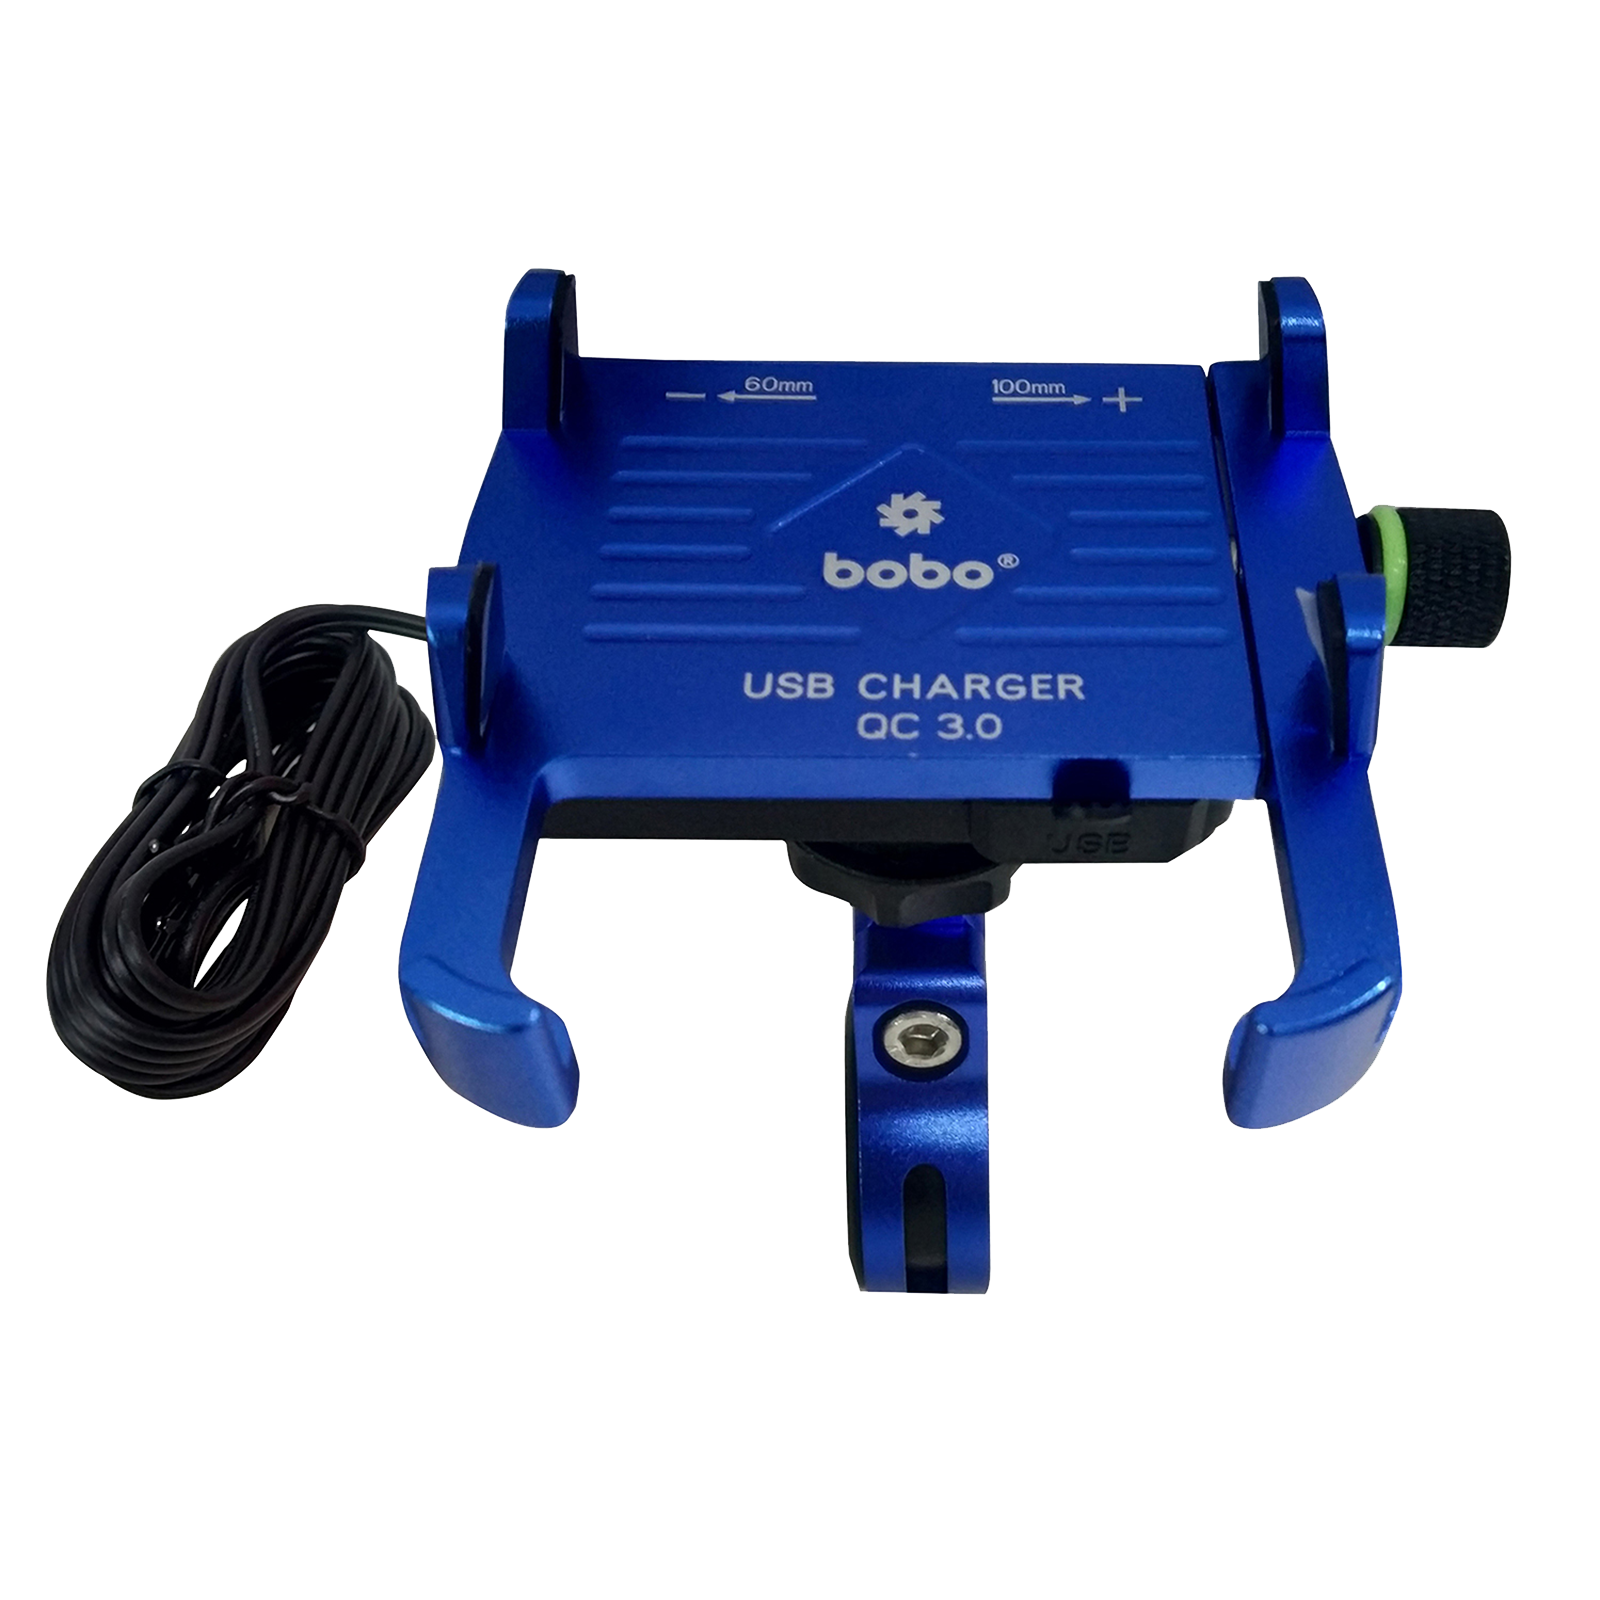 Bobo BM5 Claw-Grip Aluminium Mounting Kit For Bike (With Fast USB 3.0 Charger, BB-BM-005-001003, Blue)_1